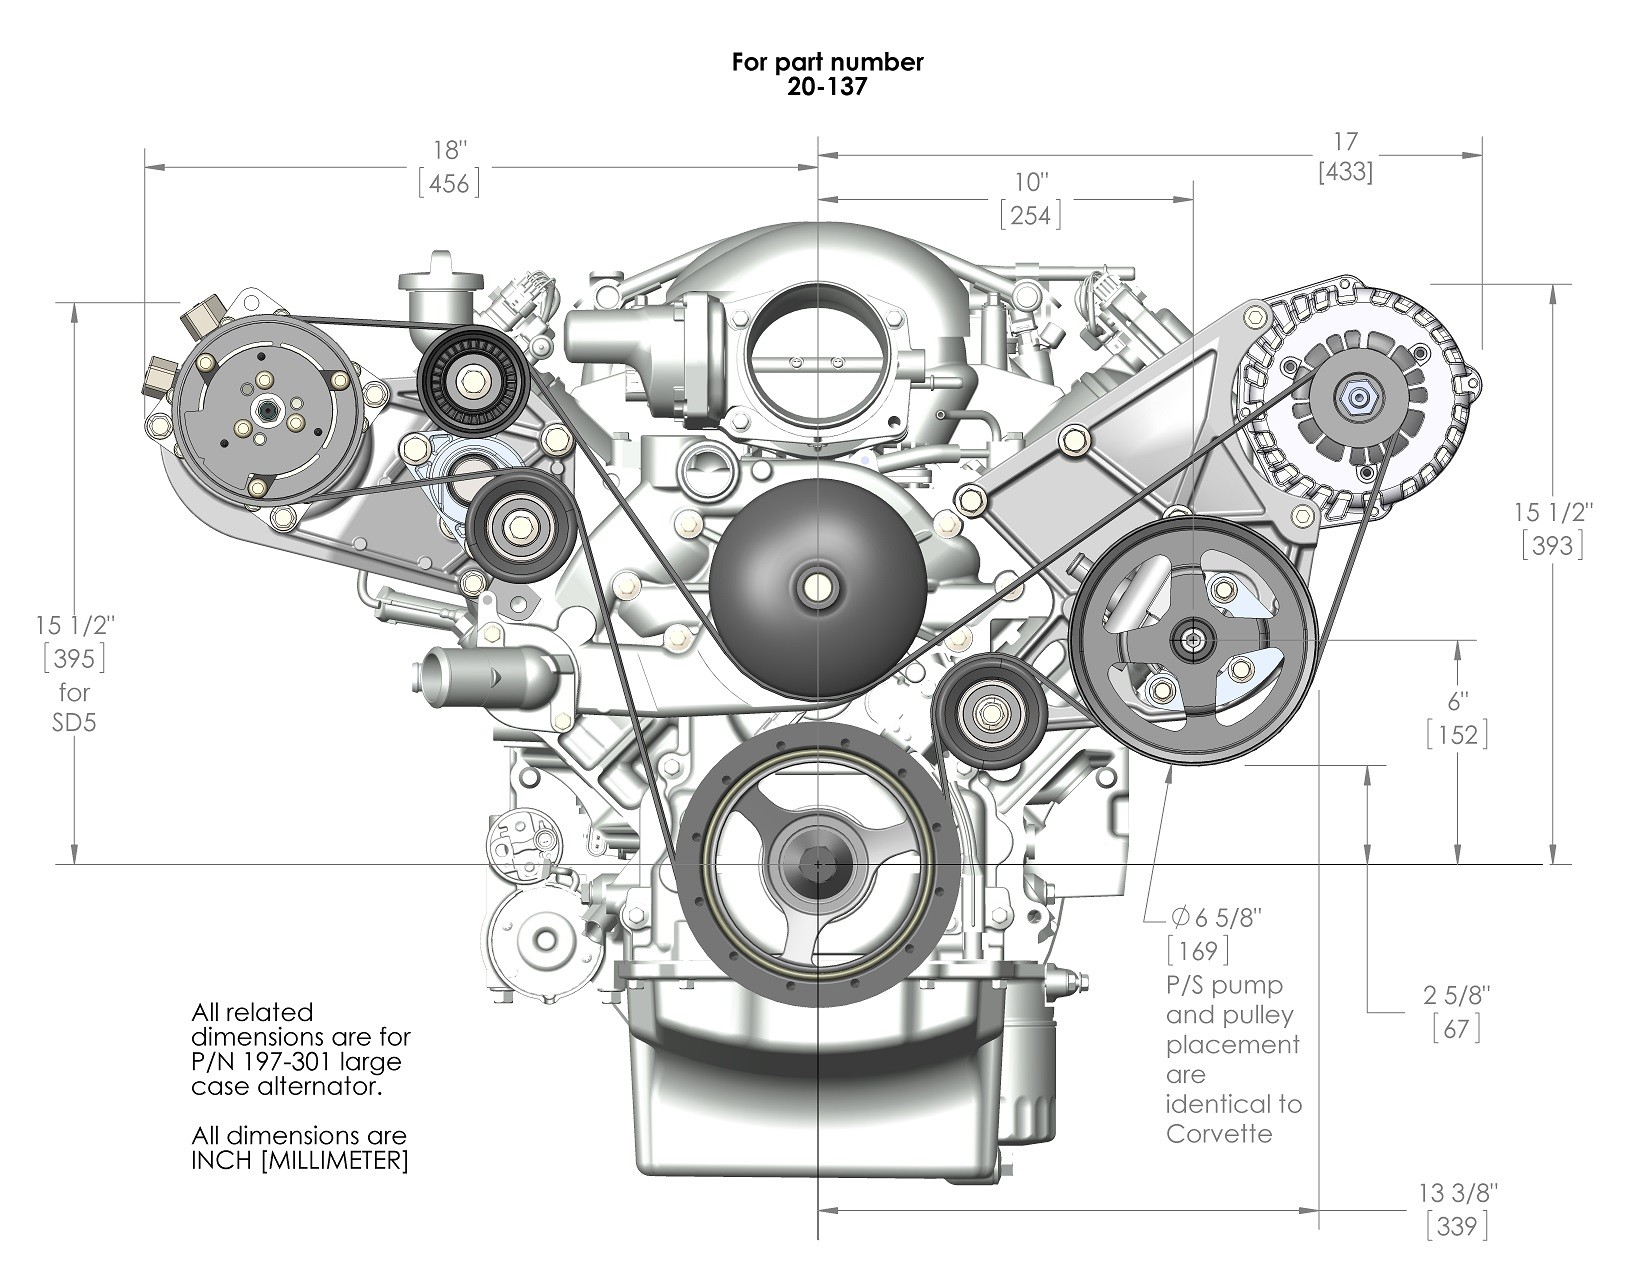 Car Body Part Diagram 20 137 Dimensions1 1650—1275 Ls Engines Pinterest Of Car Body Part Diagram